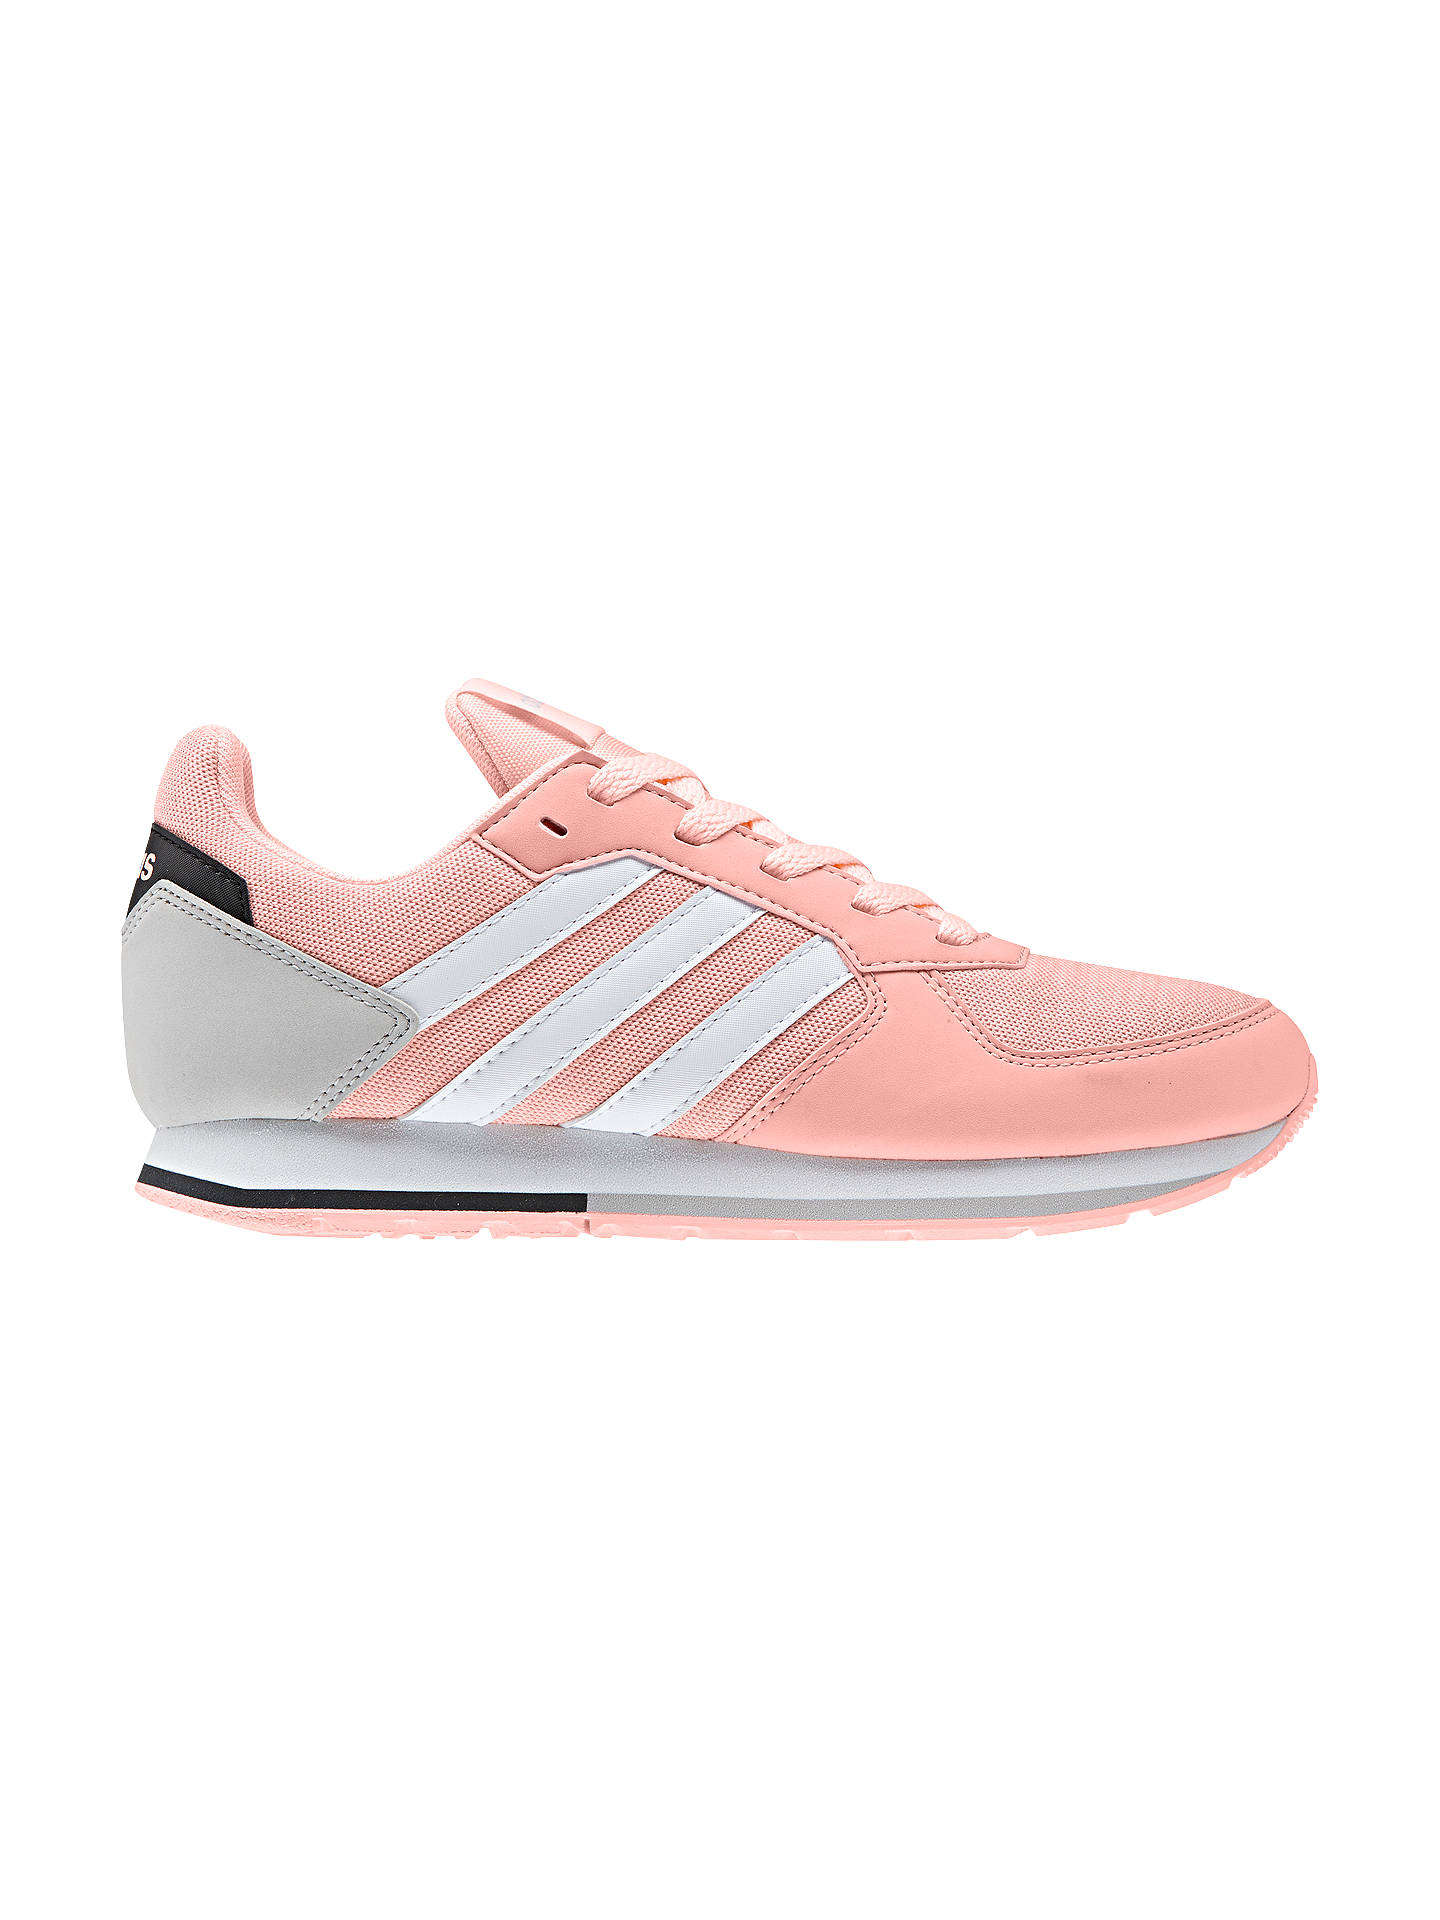 543a5f3b65c0 adidas Children s 8K Trainers at John Lewis   Partners